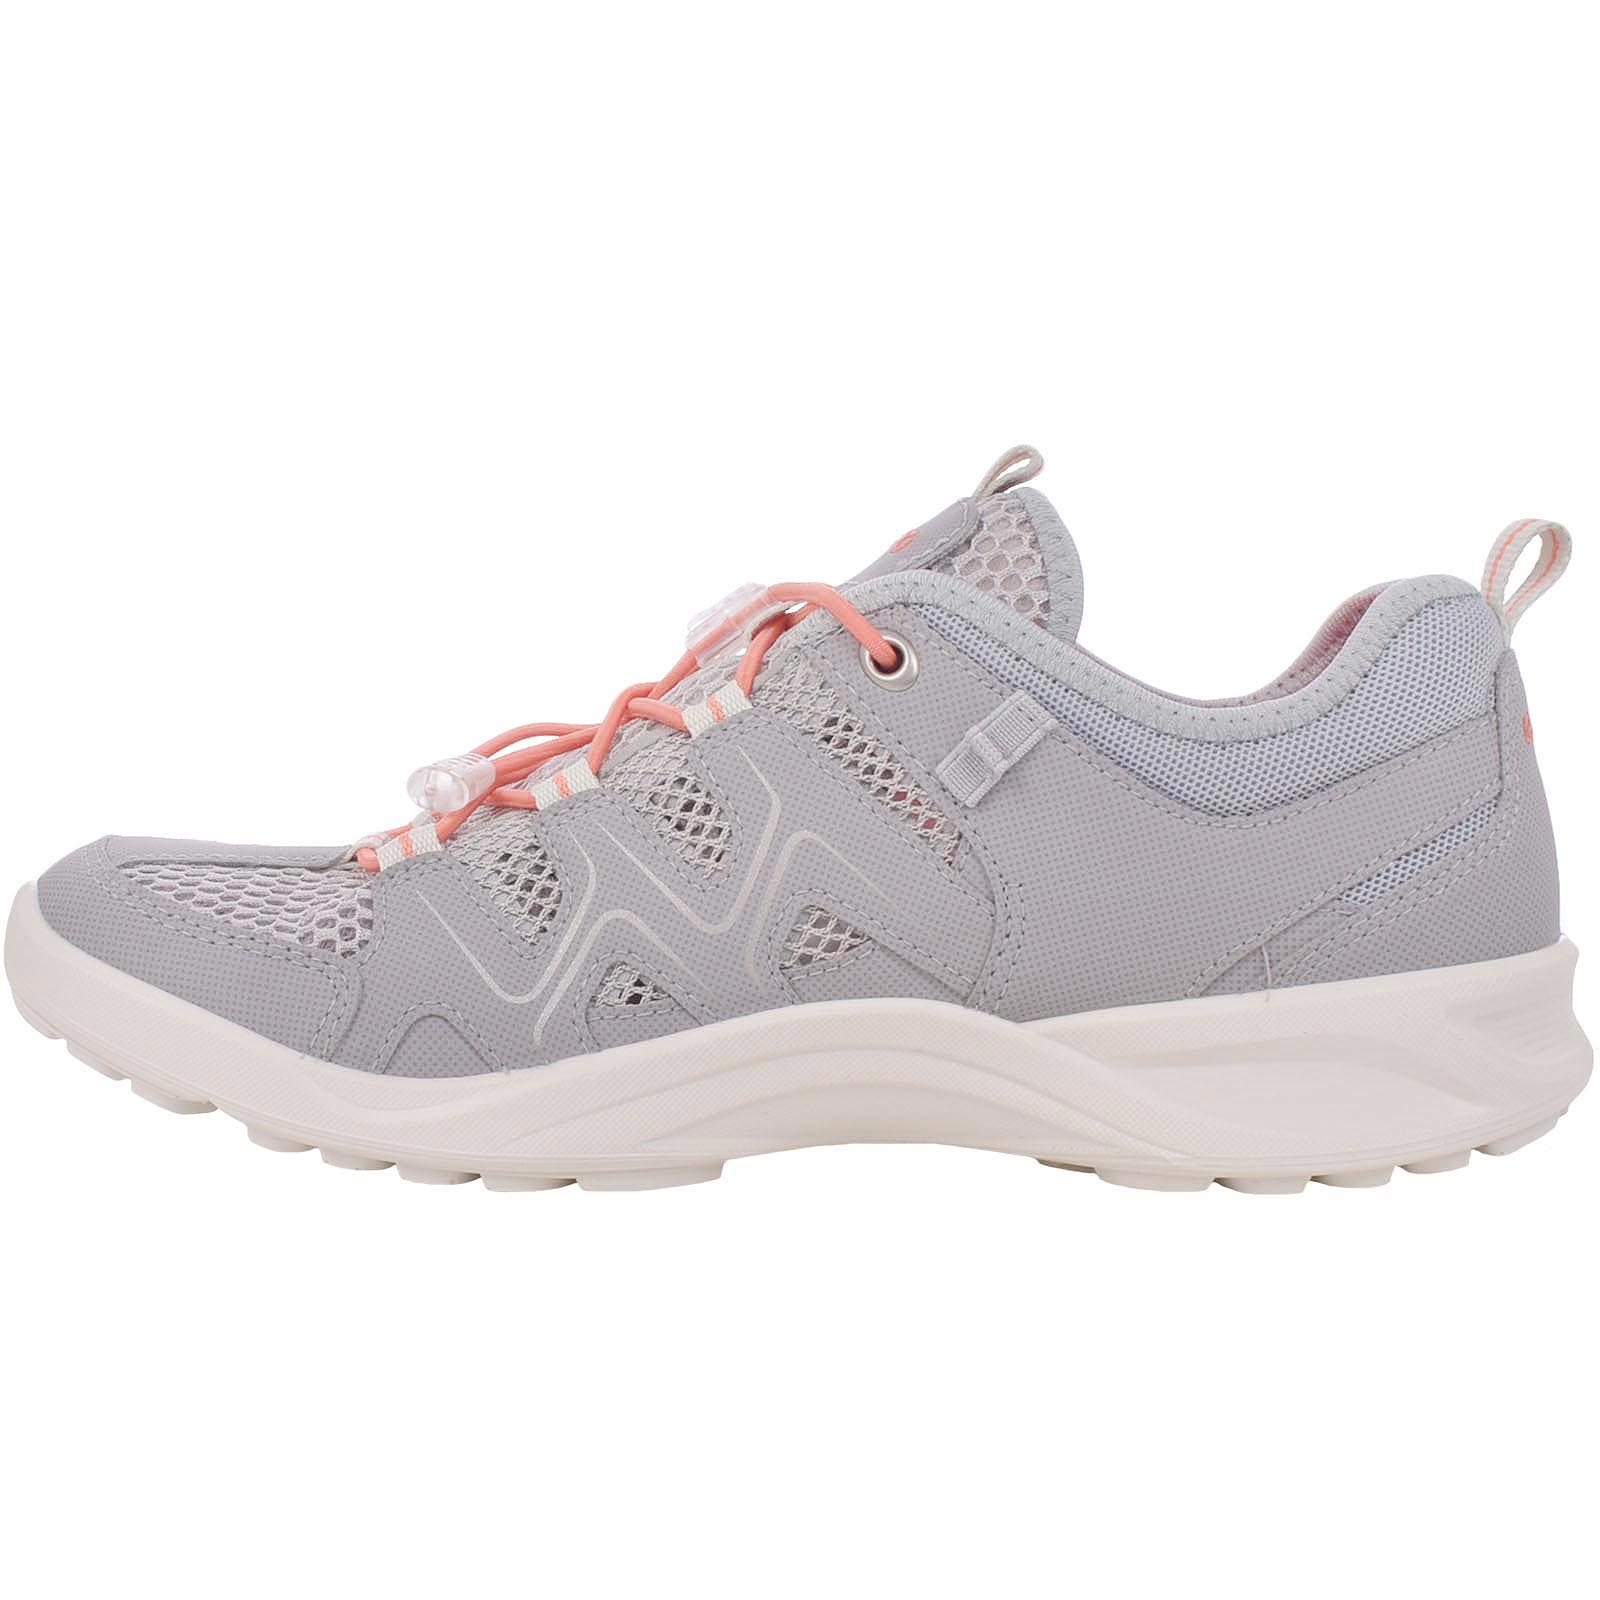 Ecco Womens Terracruise LT Outdoors Walking Trainers Sneakers Shoes